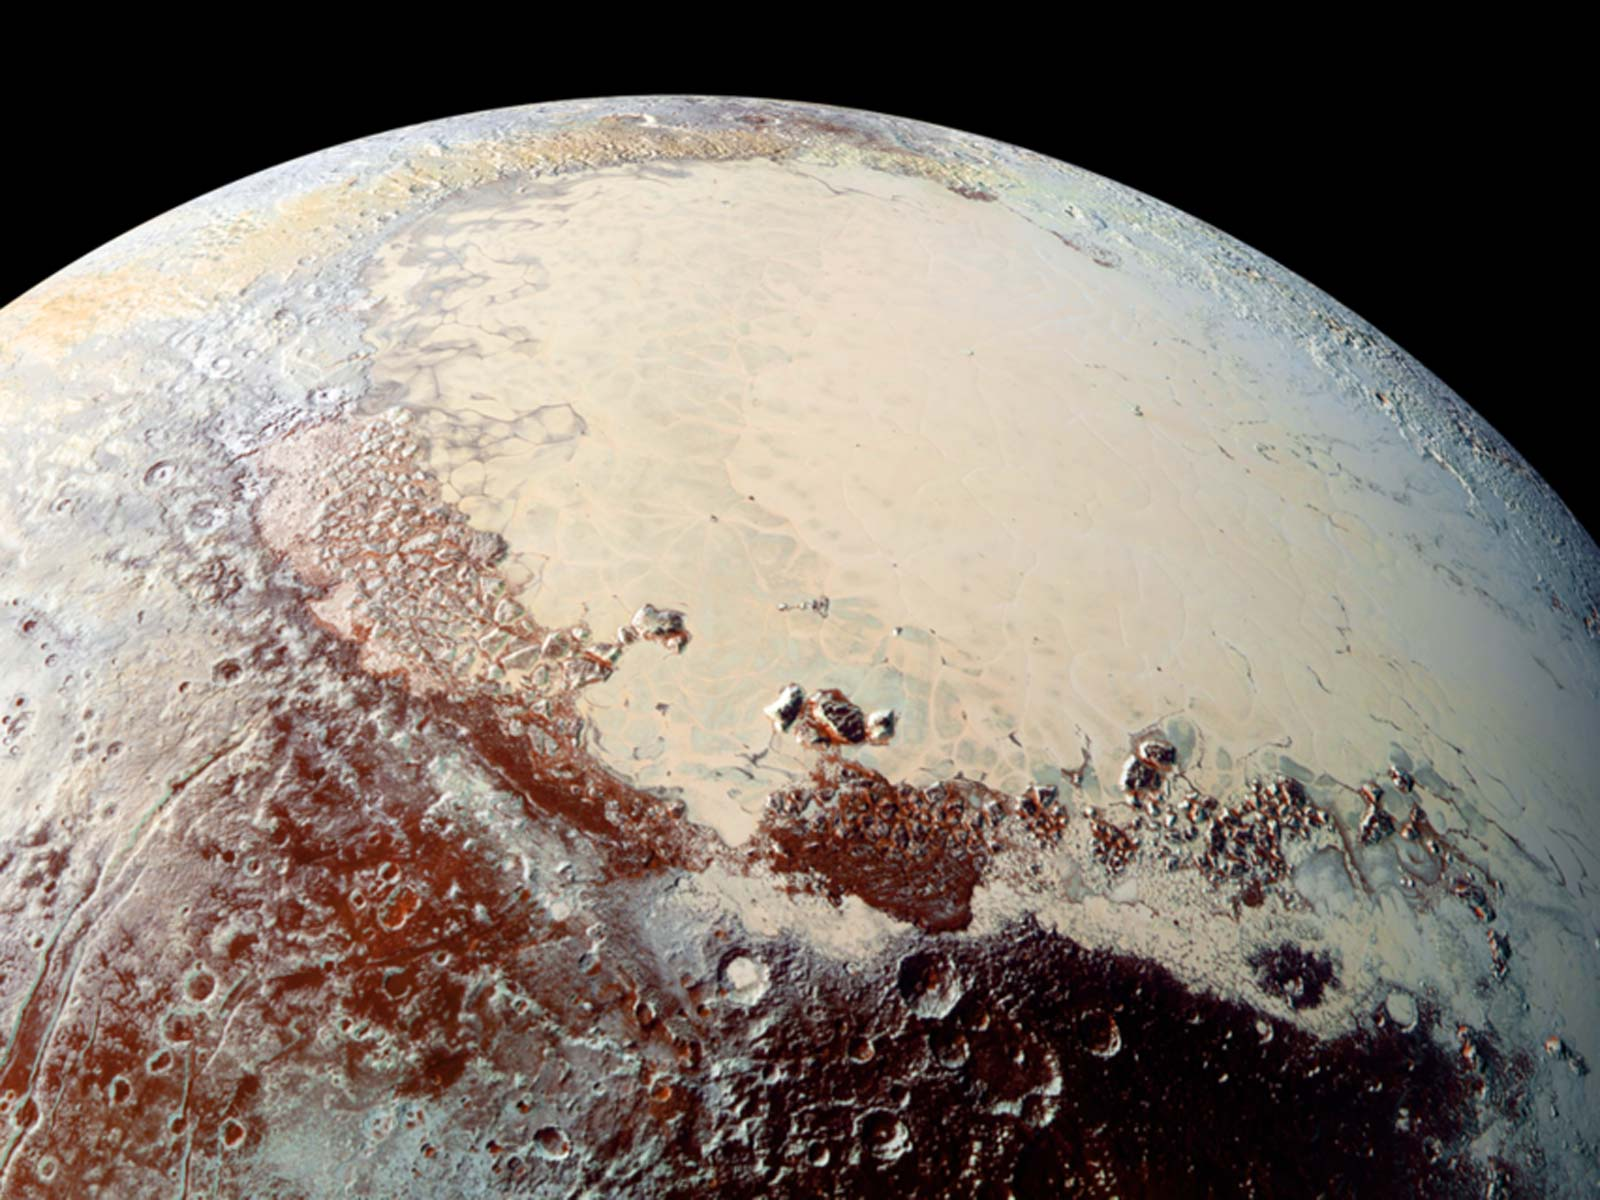 Pluto, As Seen by New Horizons | Space Wallpaper